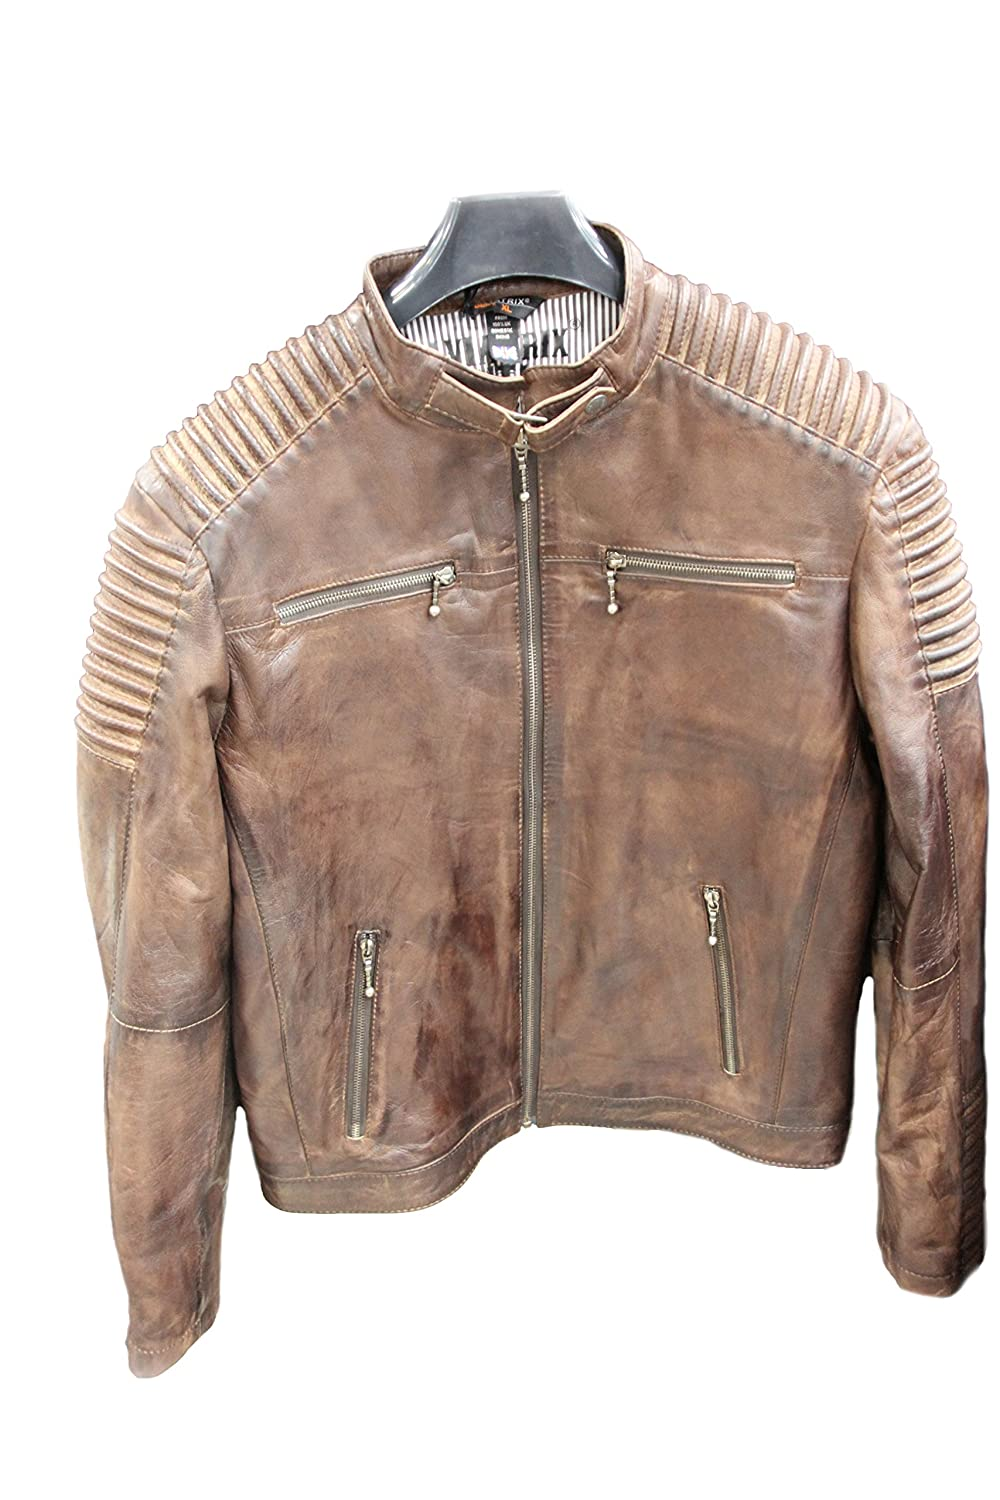 Mens Fitted Retro Style Zipped Biker Jacket Real Leather Tan Nevada Brown